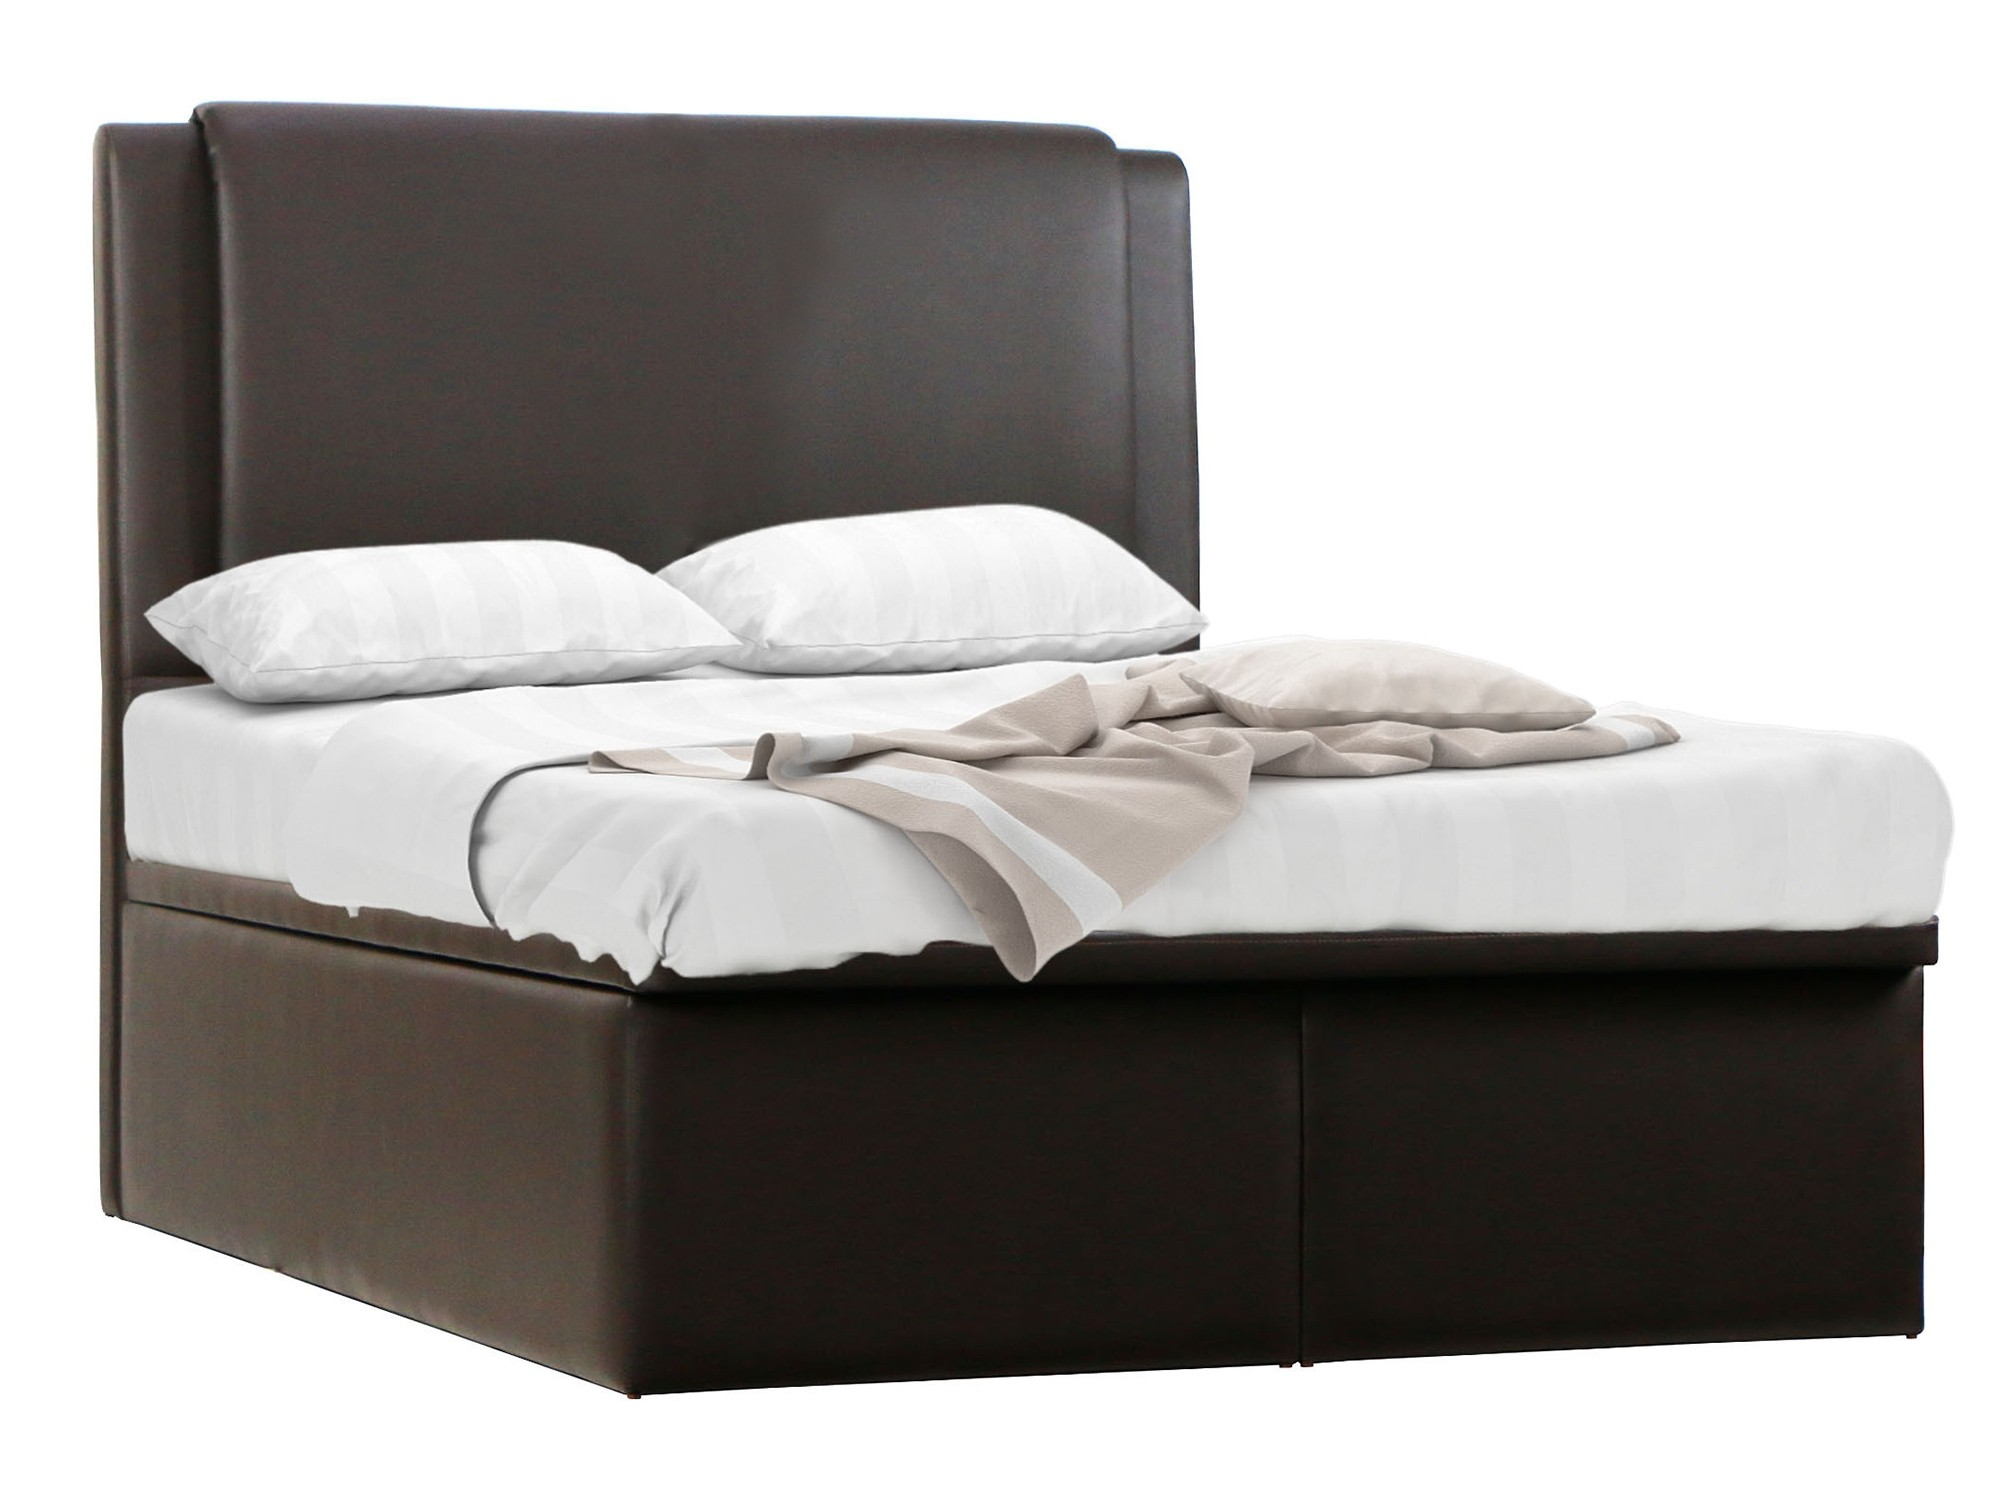 Mavin Storage Bedframe In Dark Brown Furniture Amp Home